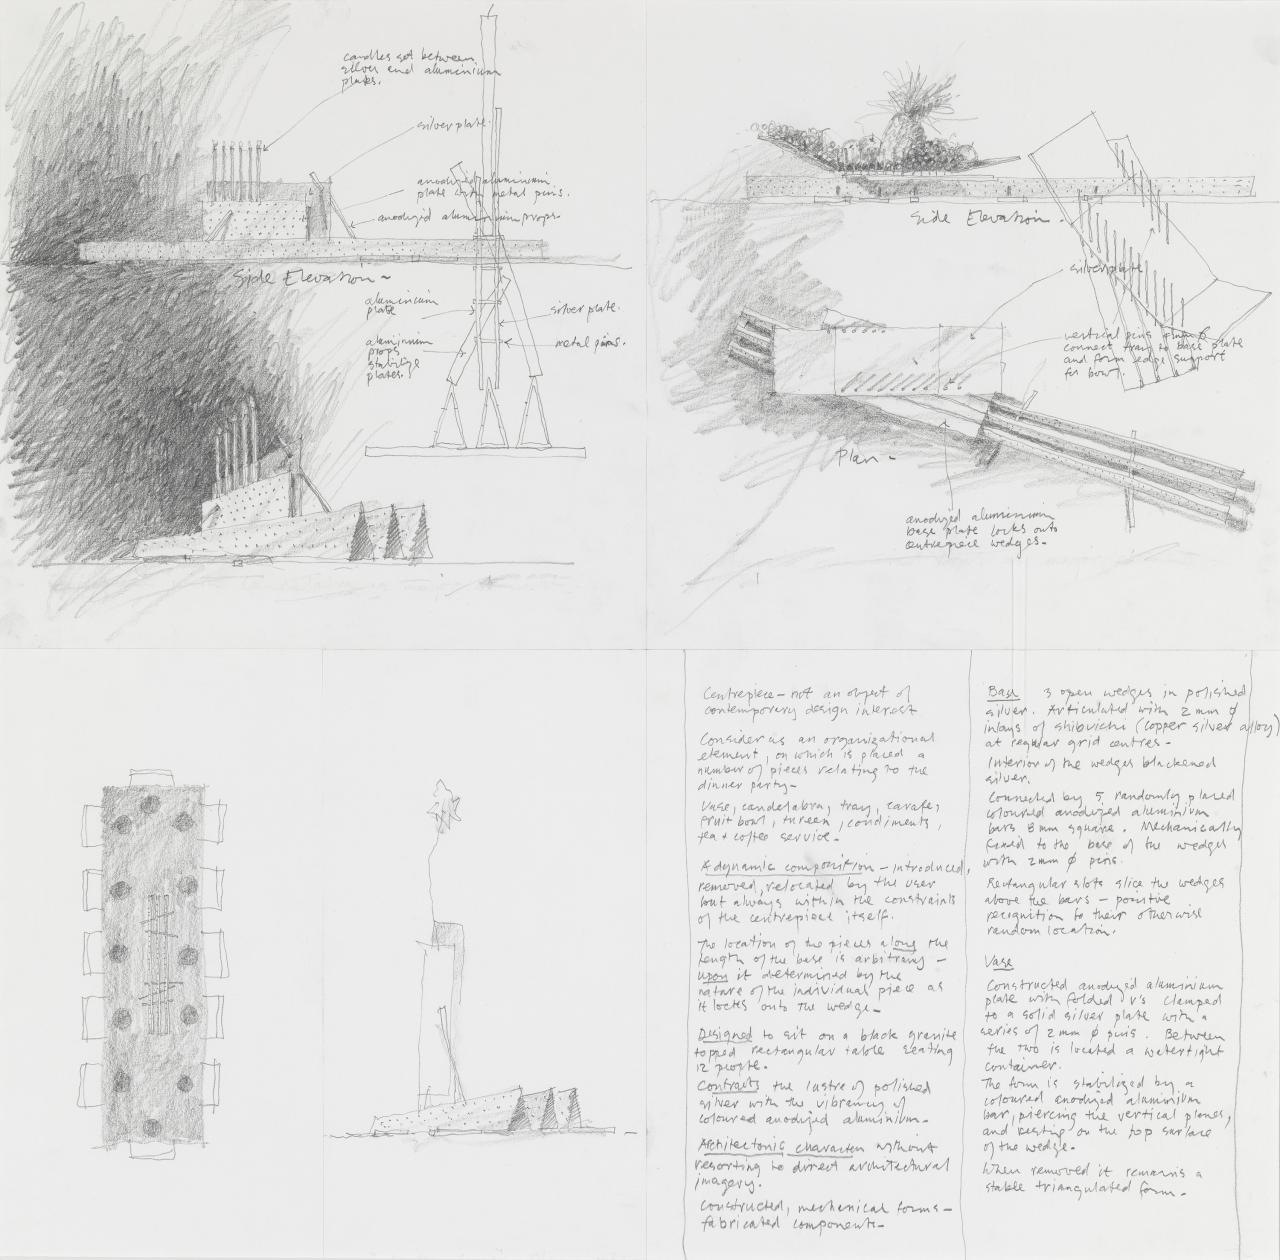 Elevations, perspectives and plans of a centrepiece